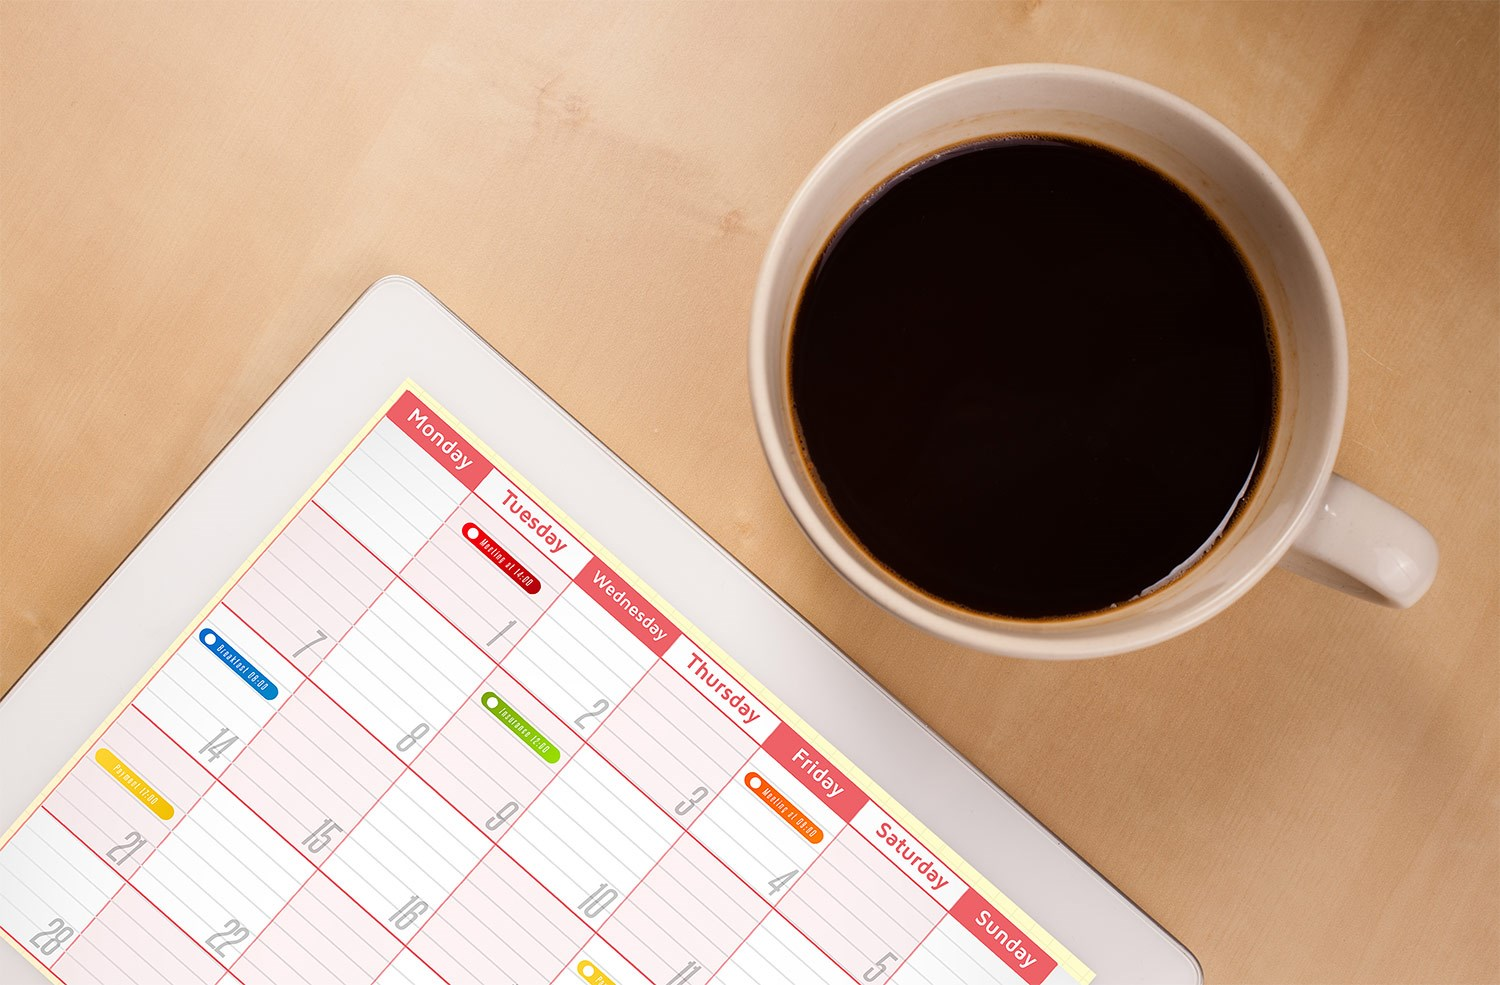 Image of coffee cup filled with coffee sitting on desk next to calendar with days of the month and different colors coded on each day.